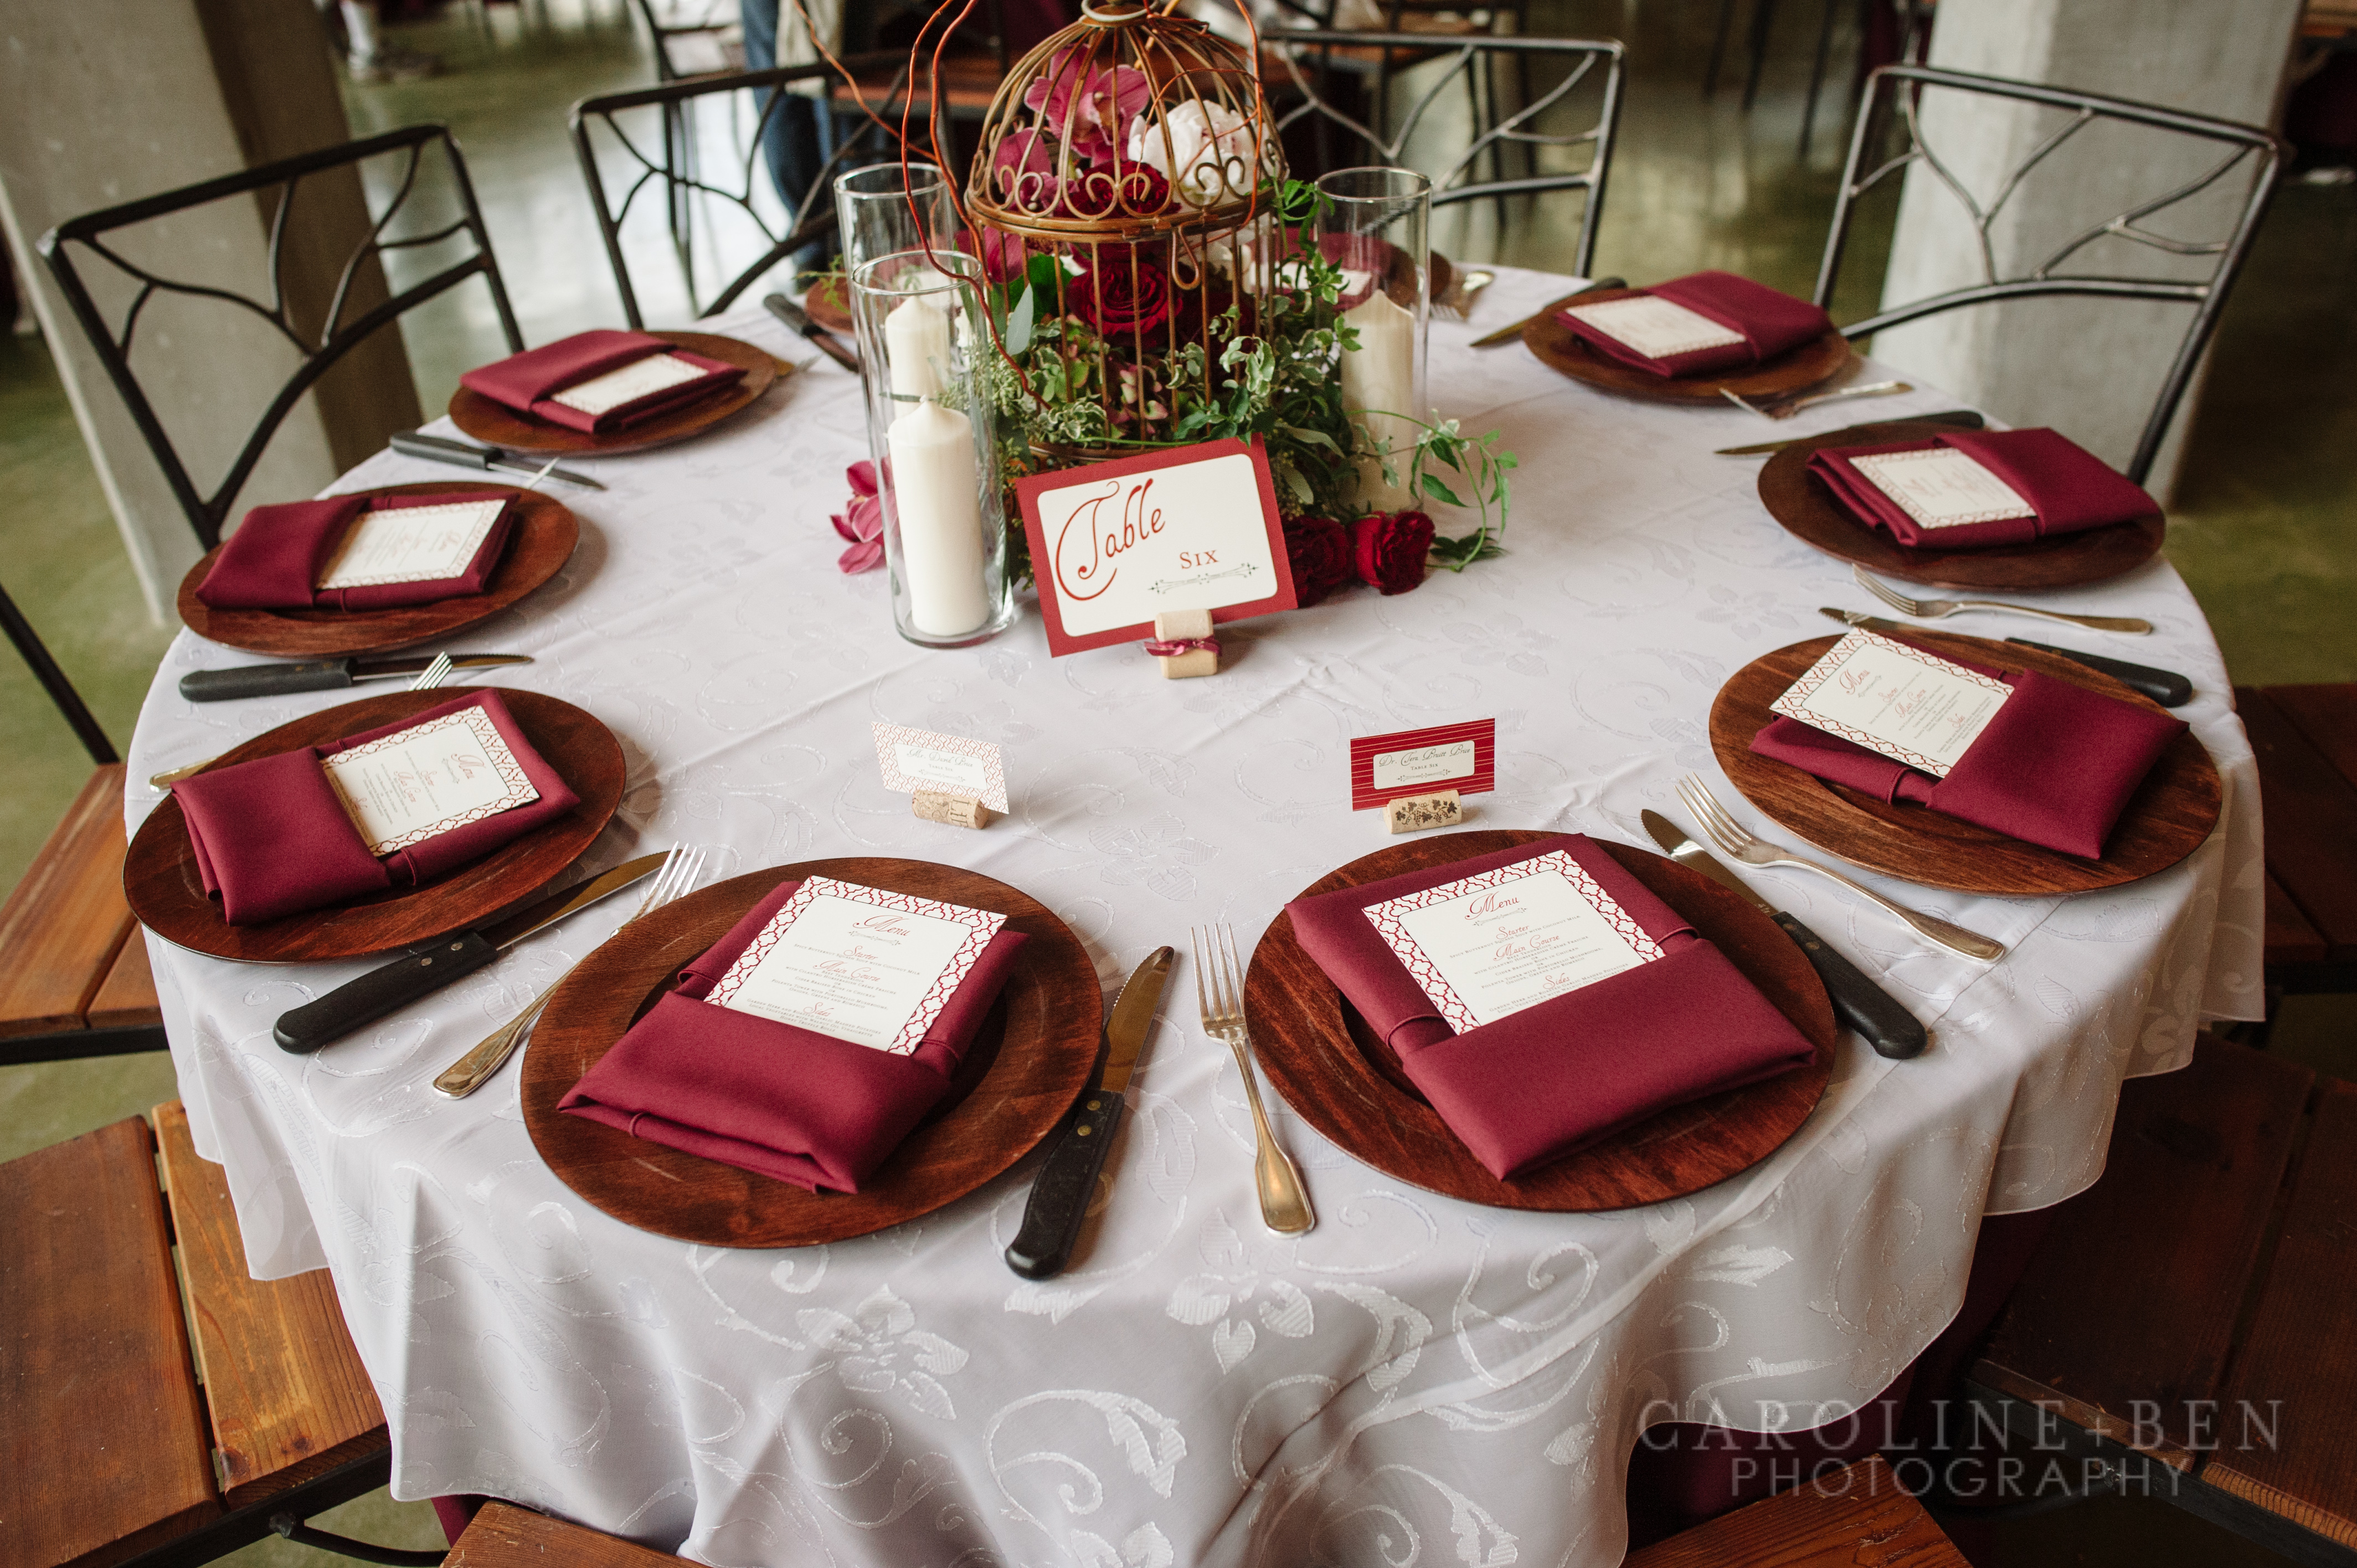 Gorgeous place settings.